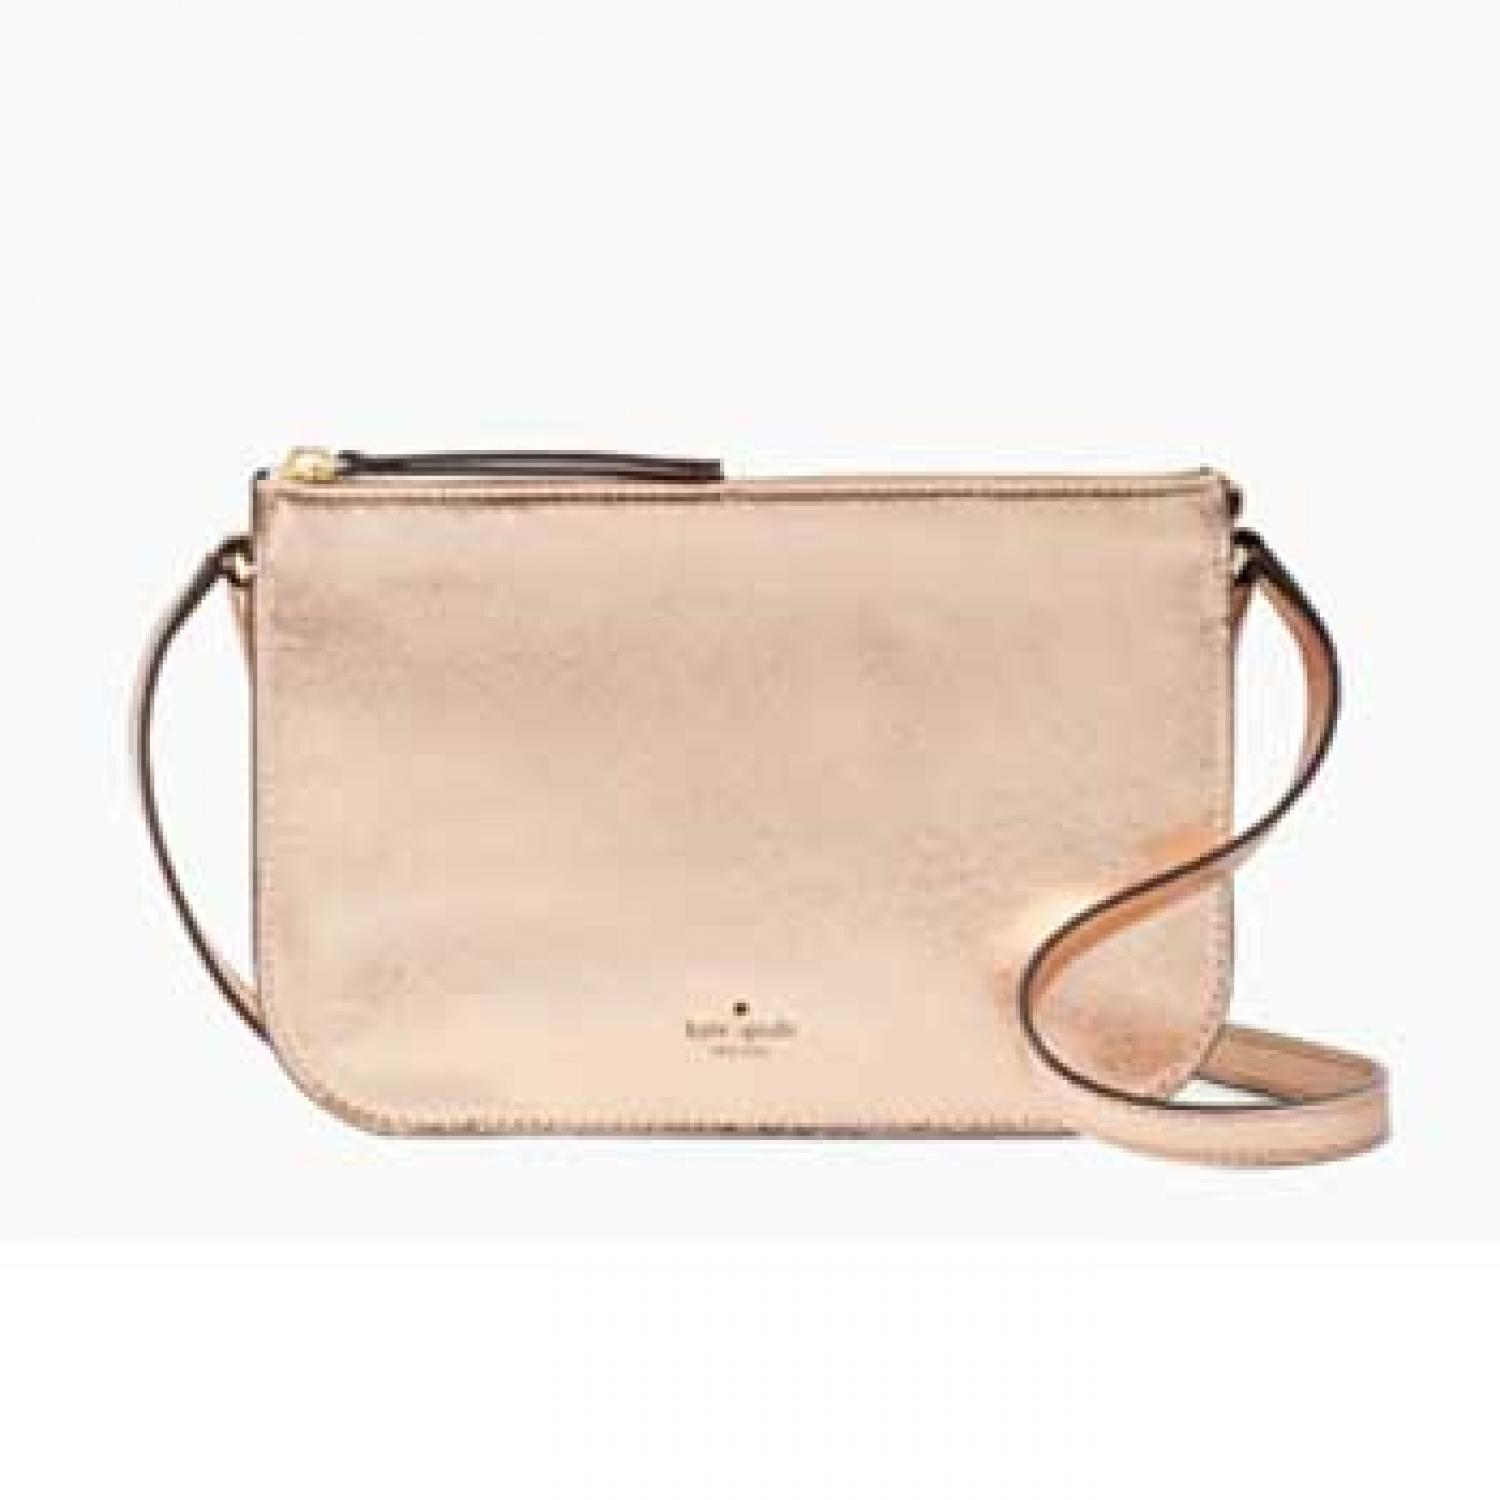 a0271d1c42a9 Step Away from the Diaper Bag! Kate Spade s Iconic Handbags Are 40% Off  Right Now